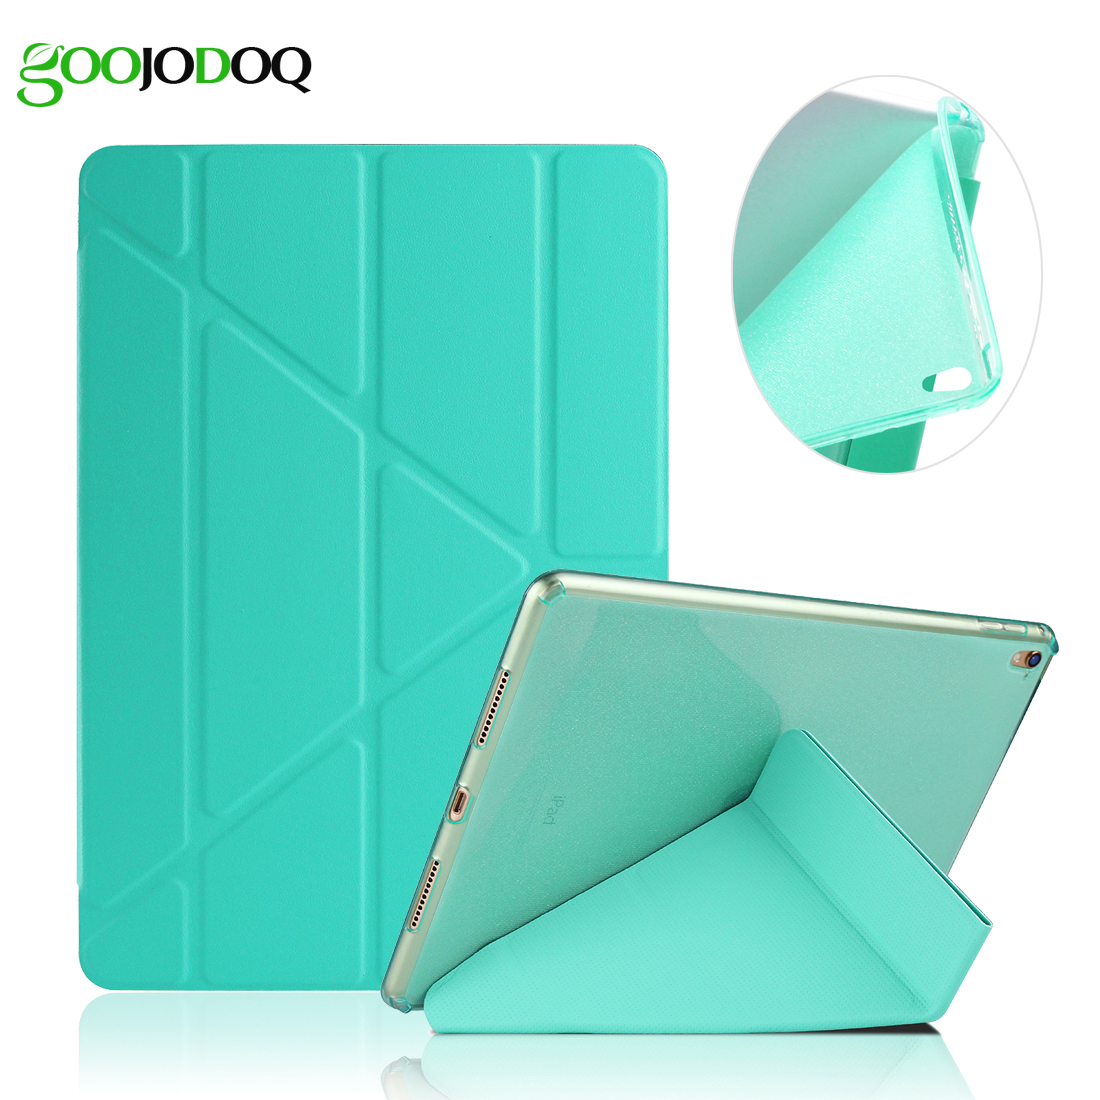 Case For iPad Pro 9.7 / iPad 2 3 4 PU Leather Smart Cover, [Multiple Stand + Glitter Silicone Soft Back] for iPad 4 Case new luxury ultra slim silk tpu smart case for ipad pro 9 7 soft silicone case pu leather cover stand for ipad air 3 ipad 7 a71